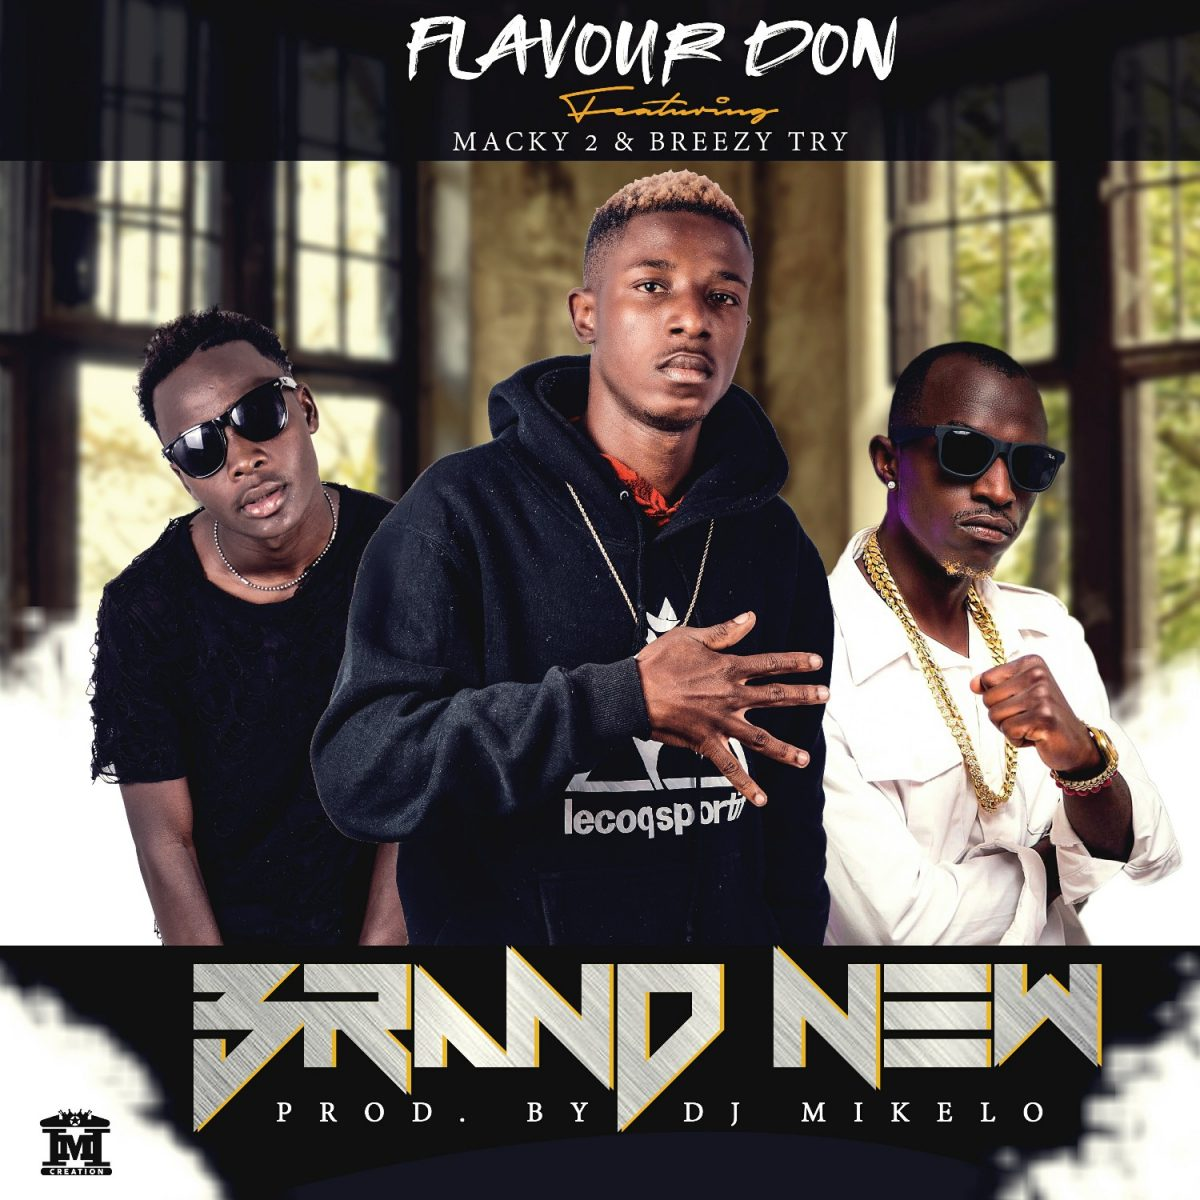 Flavour Don ft. Macky 2 & Breezy Trey - Brand New